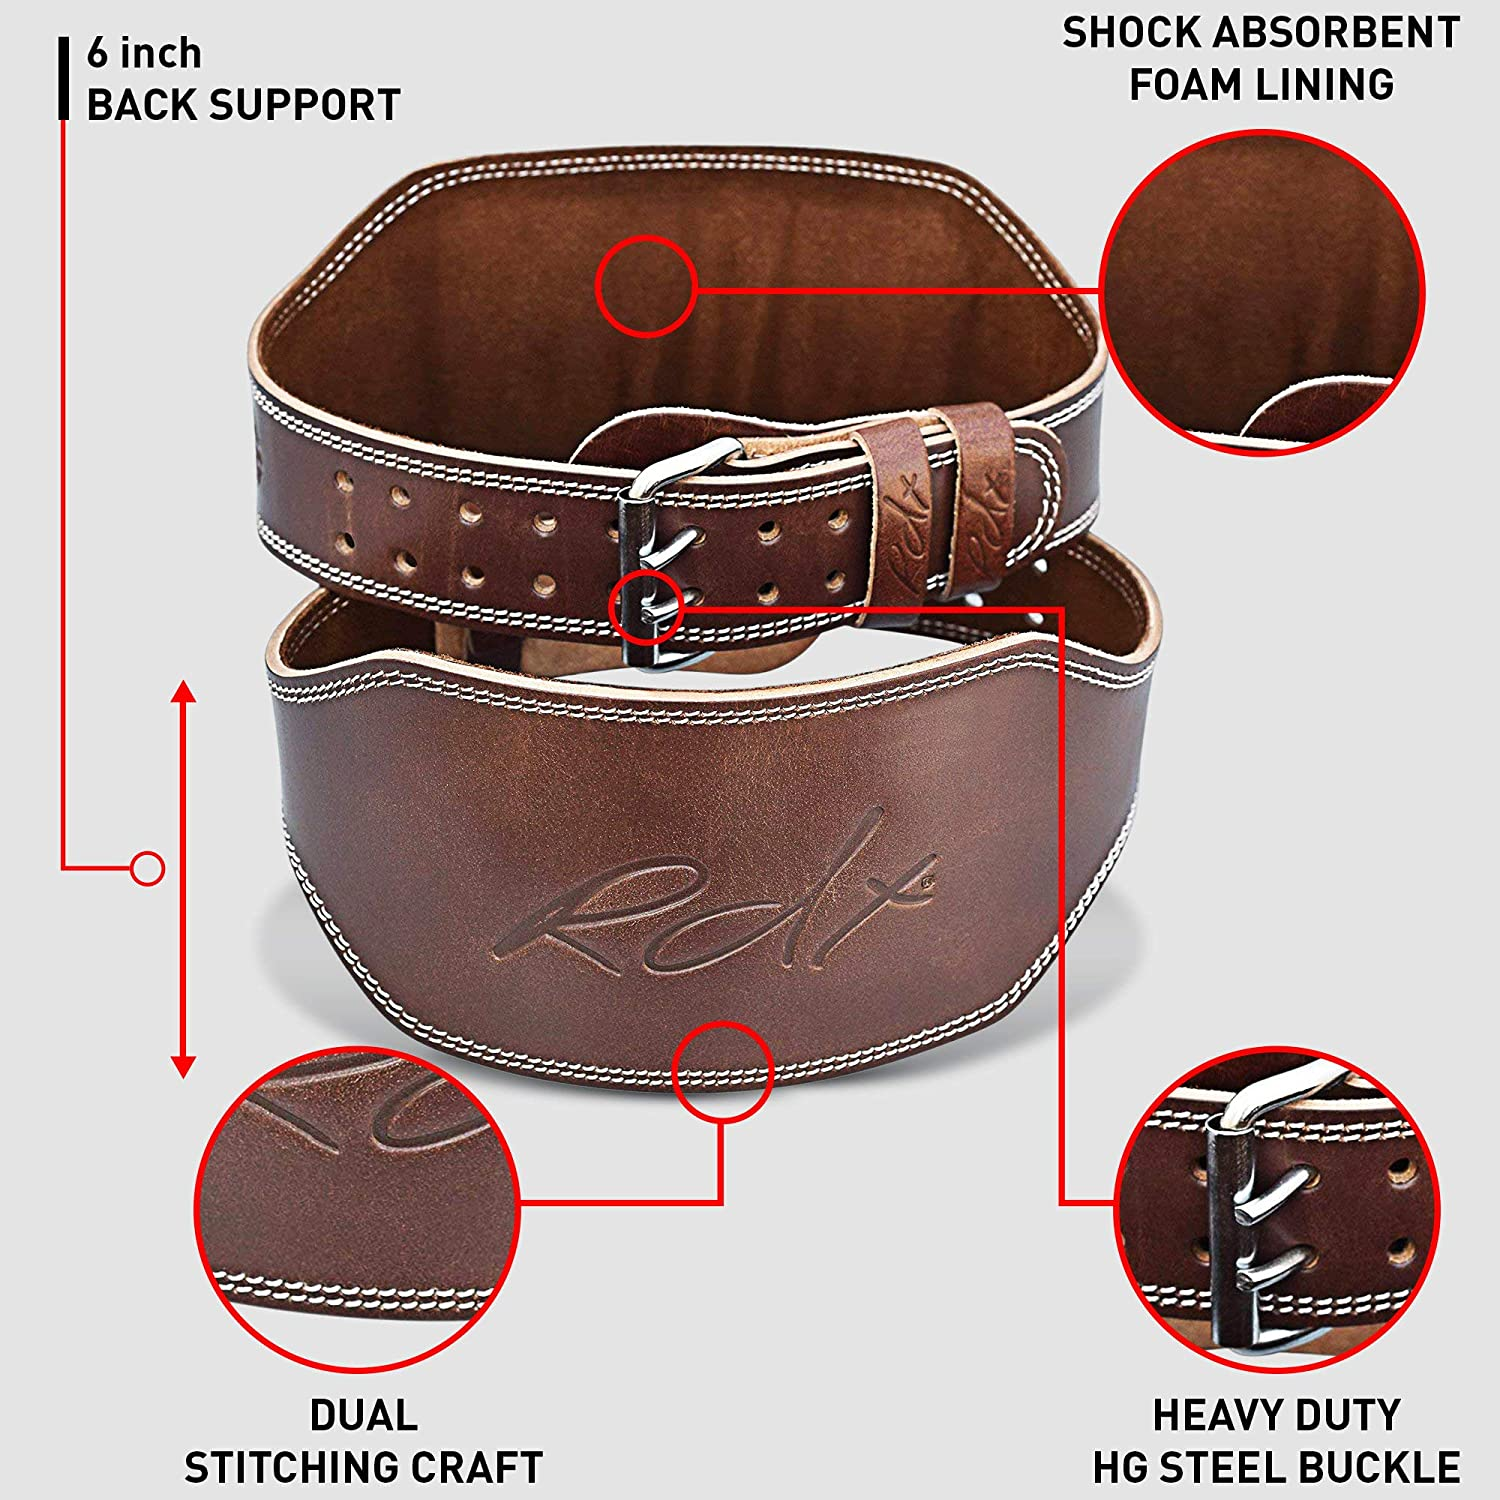 RDX Weight Lifting Belt 6 Cow Hide Leather Double Prong Back Support Gym Exercise Bodybuilding Training Workout